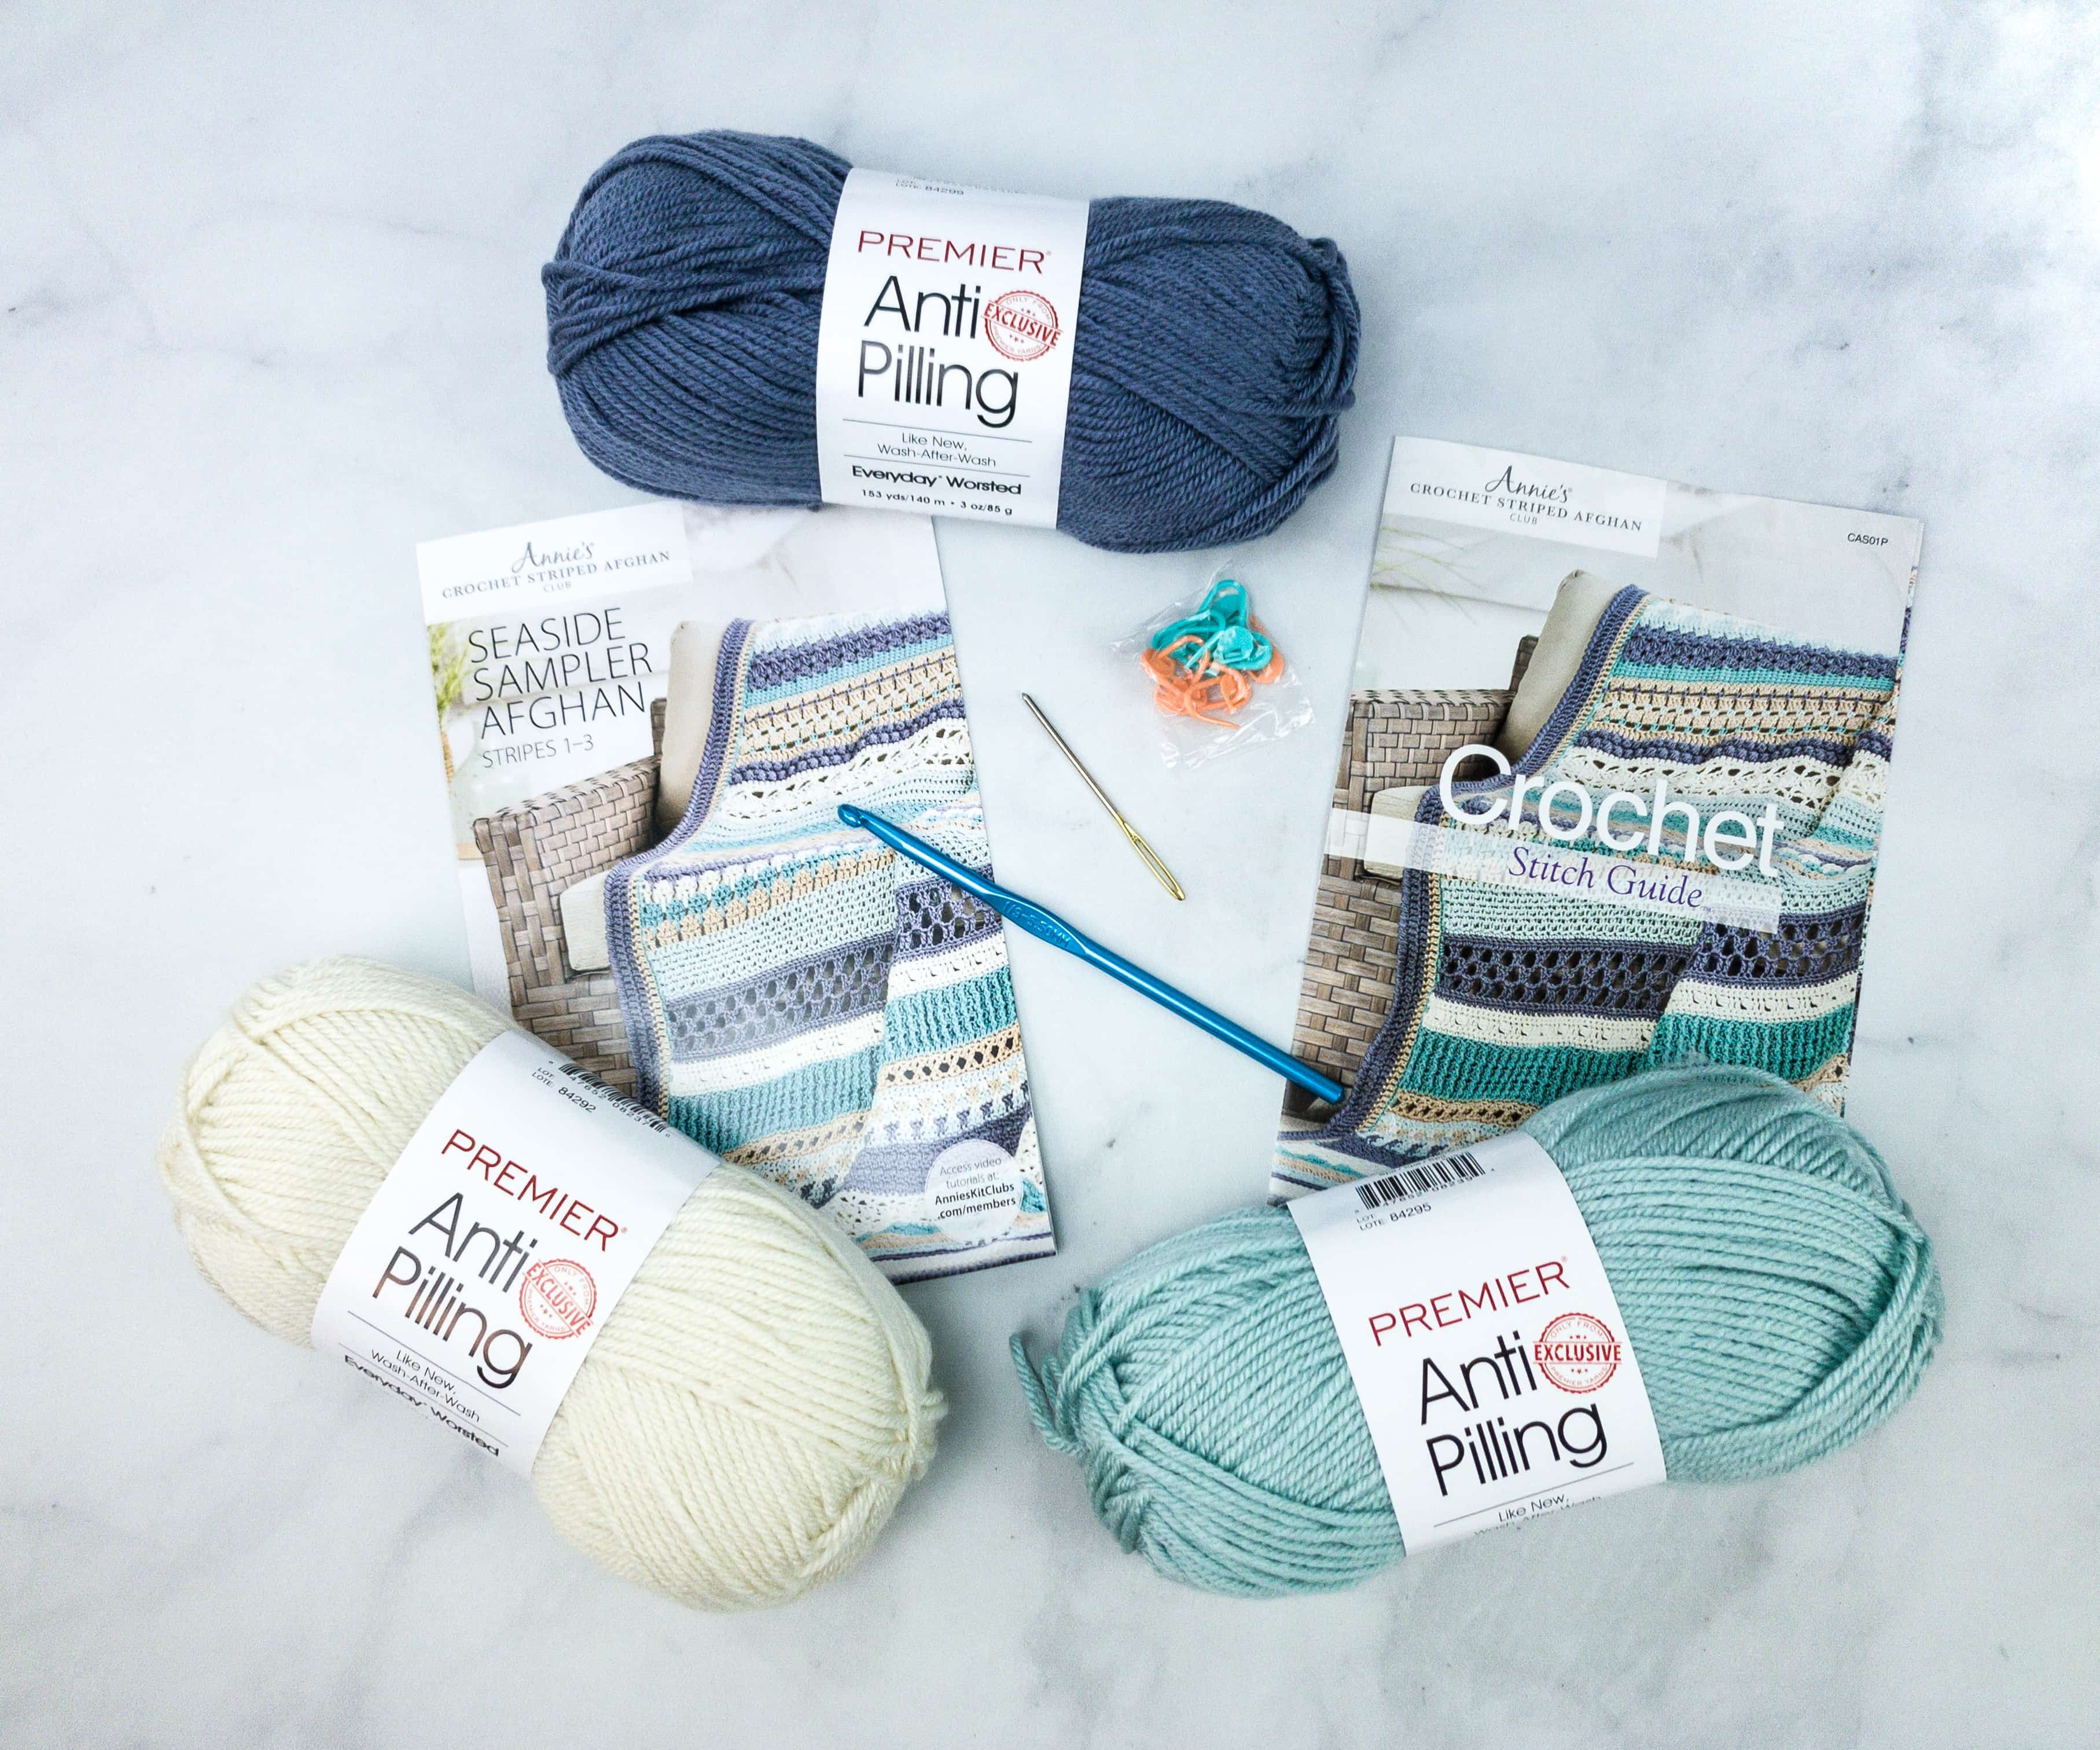 Annie S Crochet Striped Afghan Club Unboxing Review Coupon Seaside Sampler Afghan Hello Subscription In 2020 Annie S Crochet Crochet Afghan